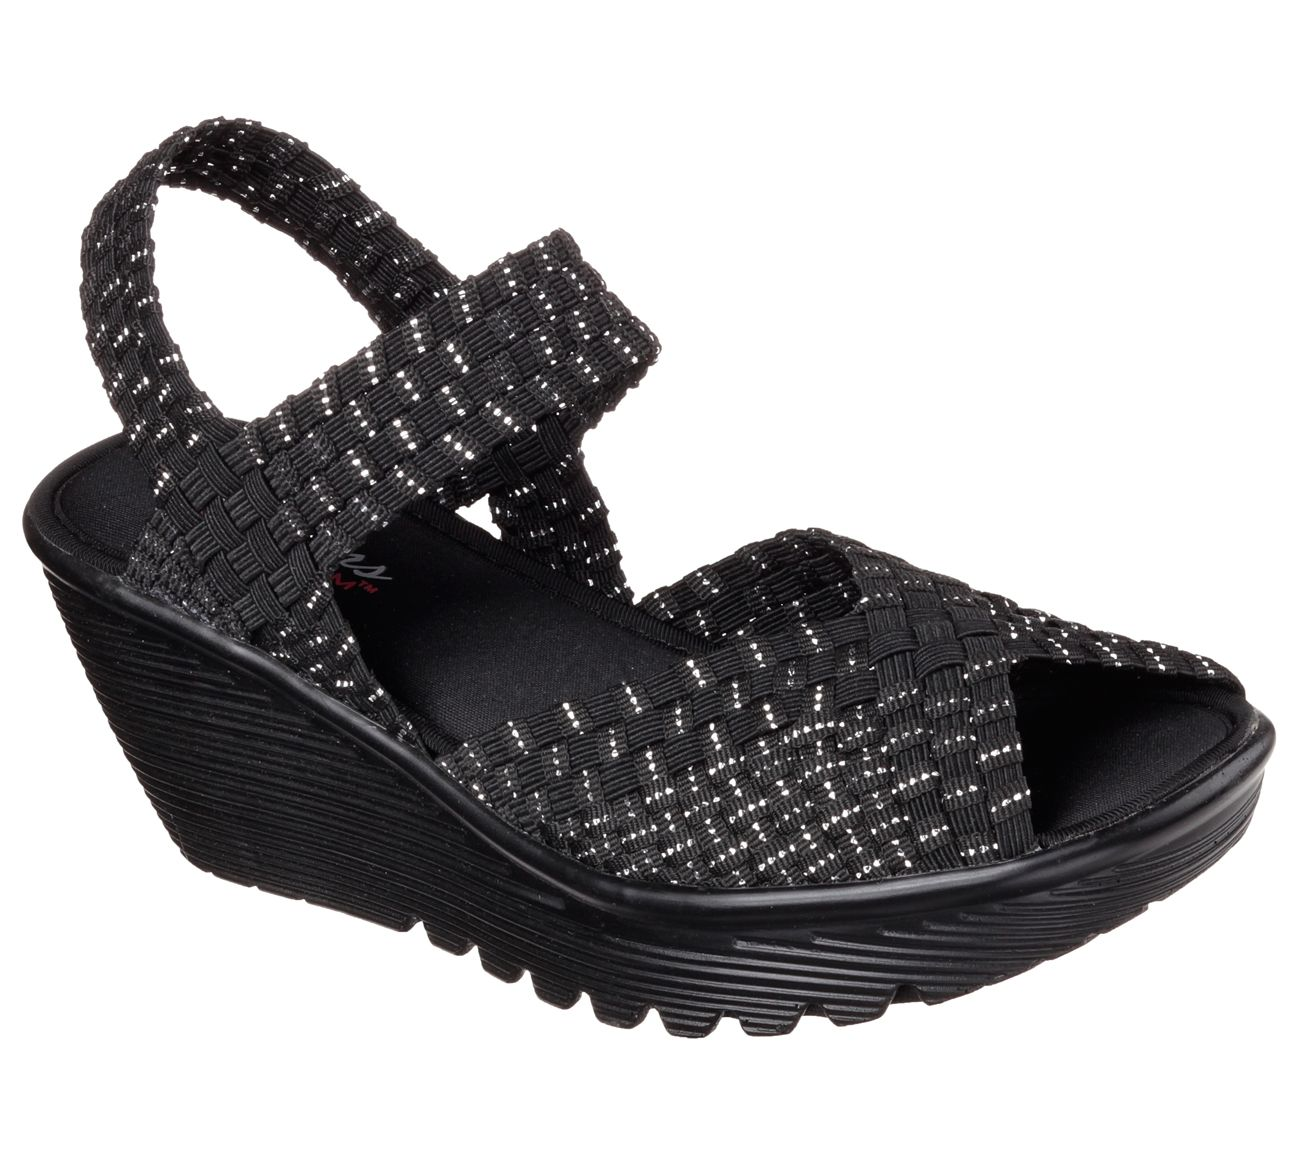 98aedad96c29b Enjoy glamorous style and amazing comfort with the SKECHERS Cali Parallel -  Close Up shoe.